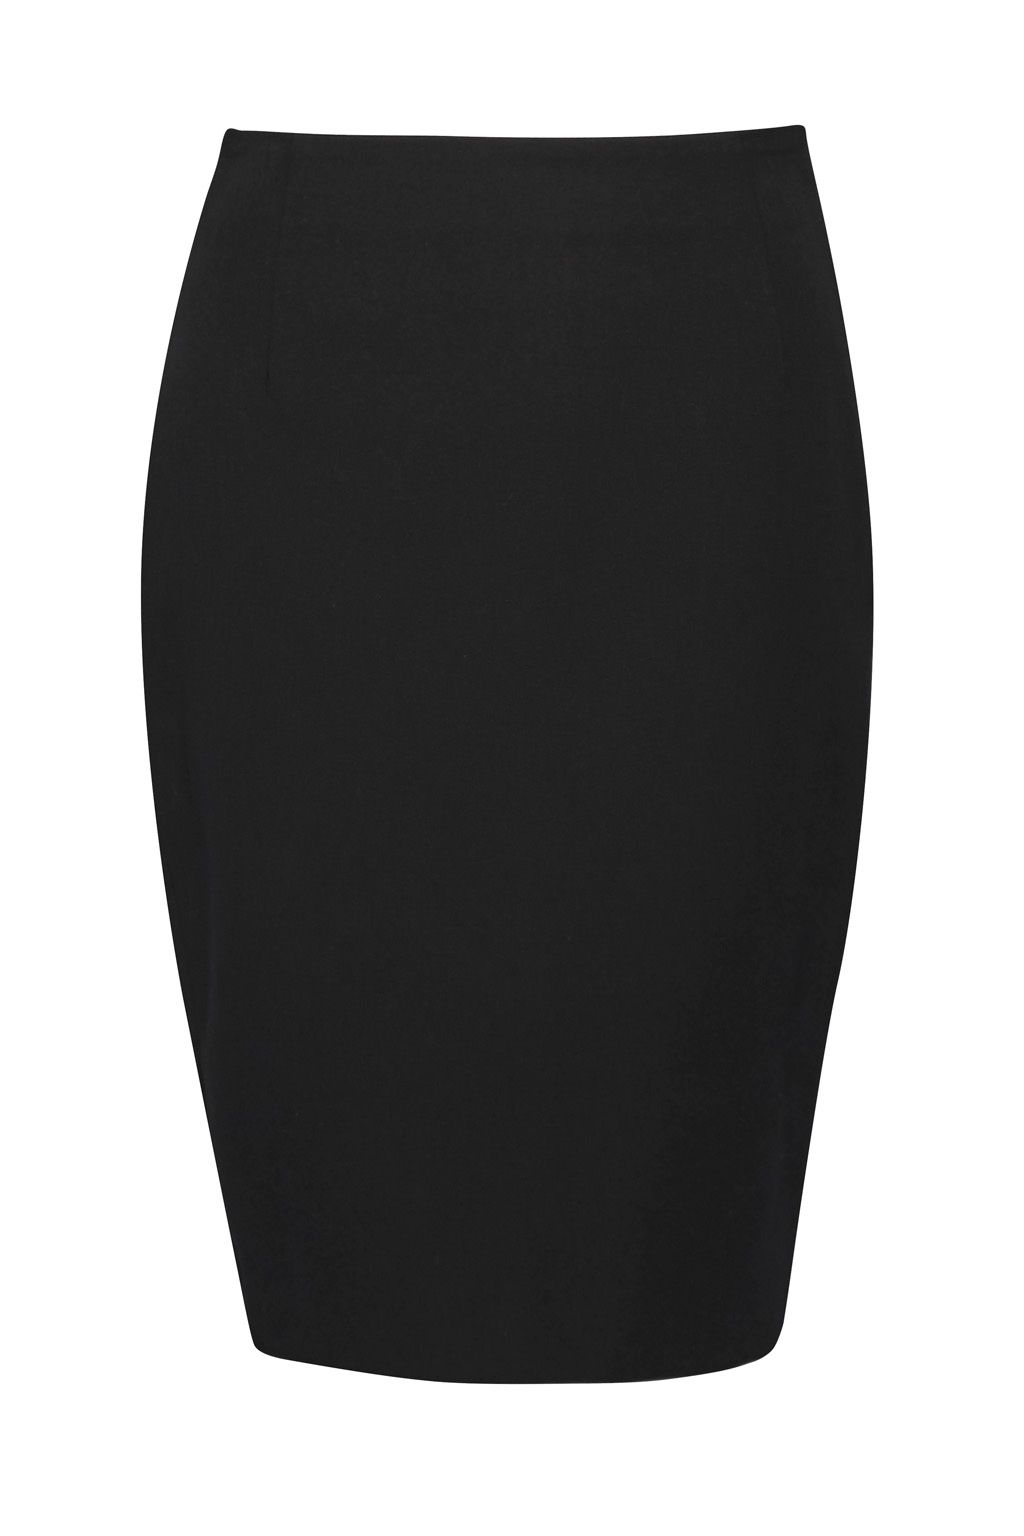 French Connection Street Twill Pencil Short Skirt, Black